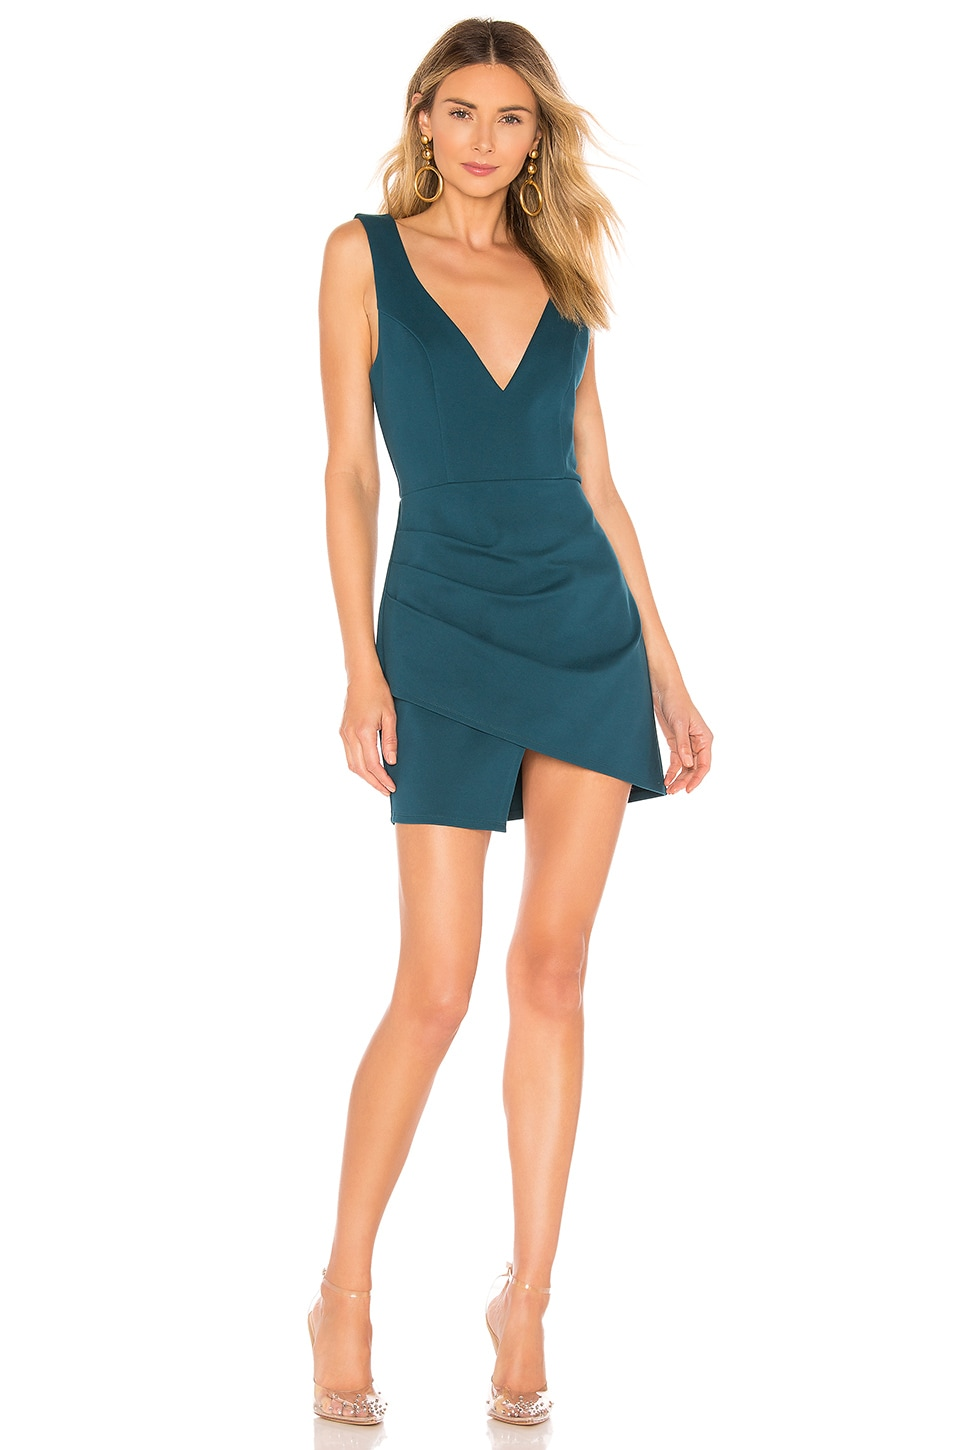 superdown Wendy Surplice Mini Dress in Teal Blue